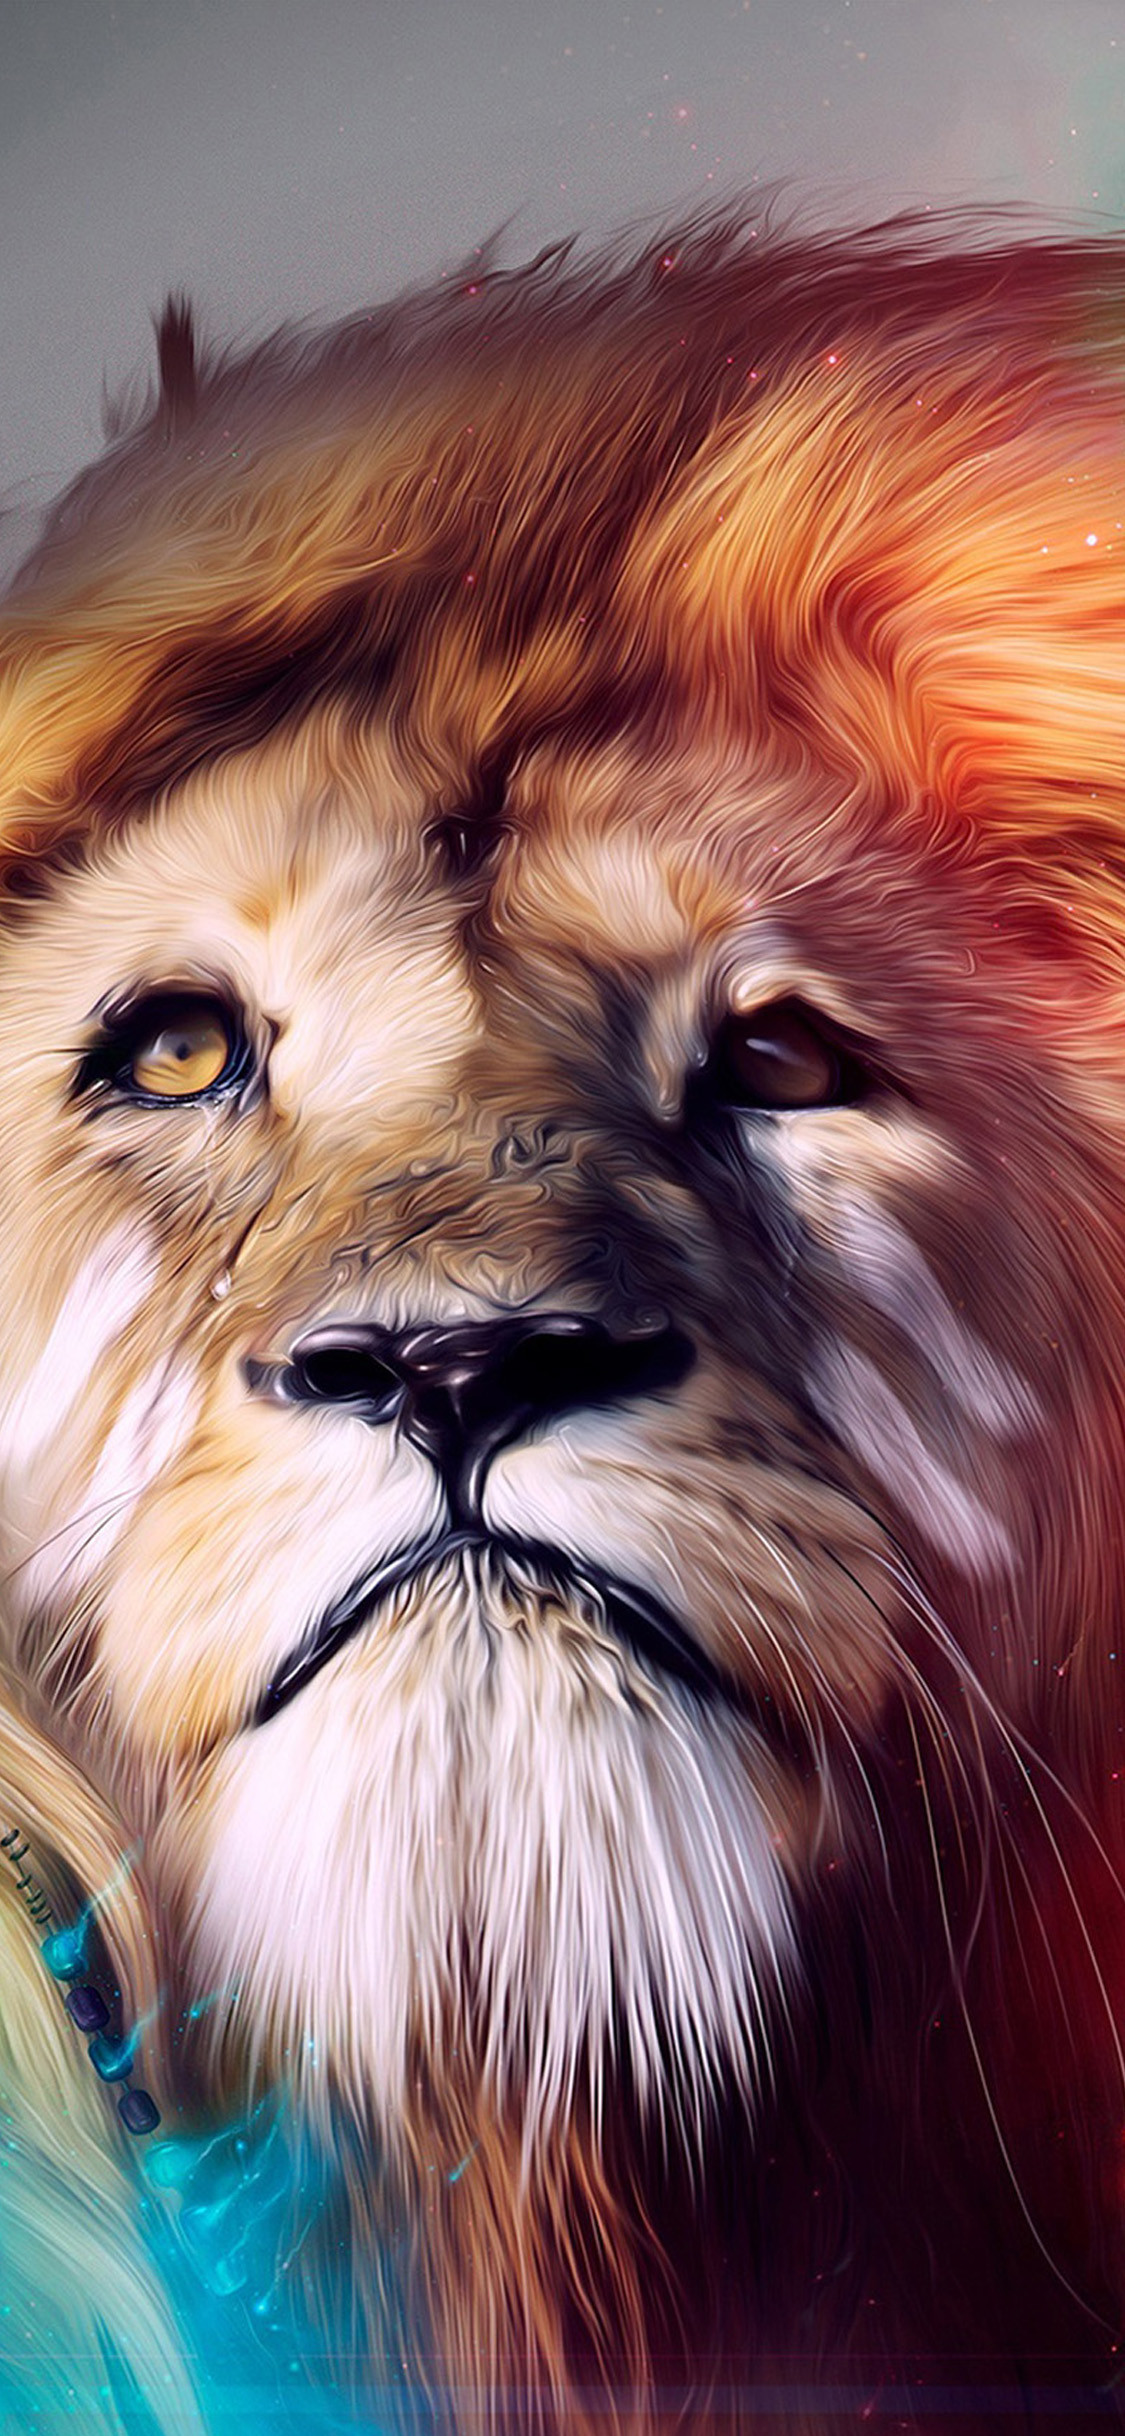 74 Lion Iphone Wallpapers On Wallpaperplay - Lion Wallpaper Iphone X , HD Wallpaper & Backgrounds